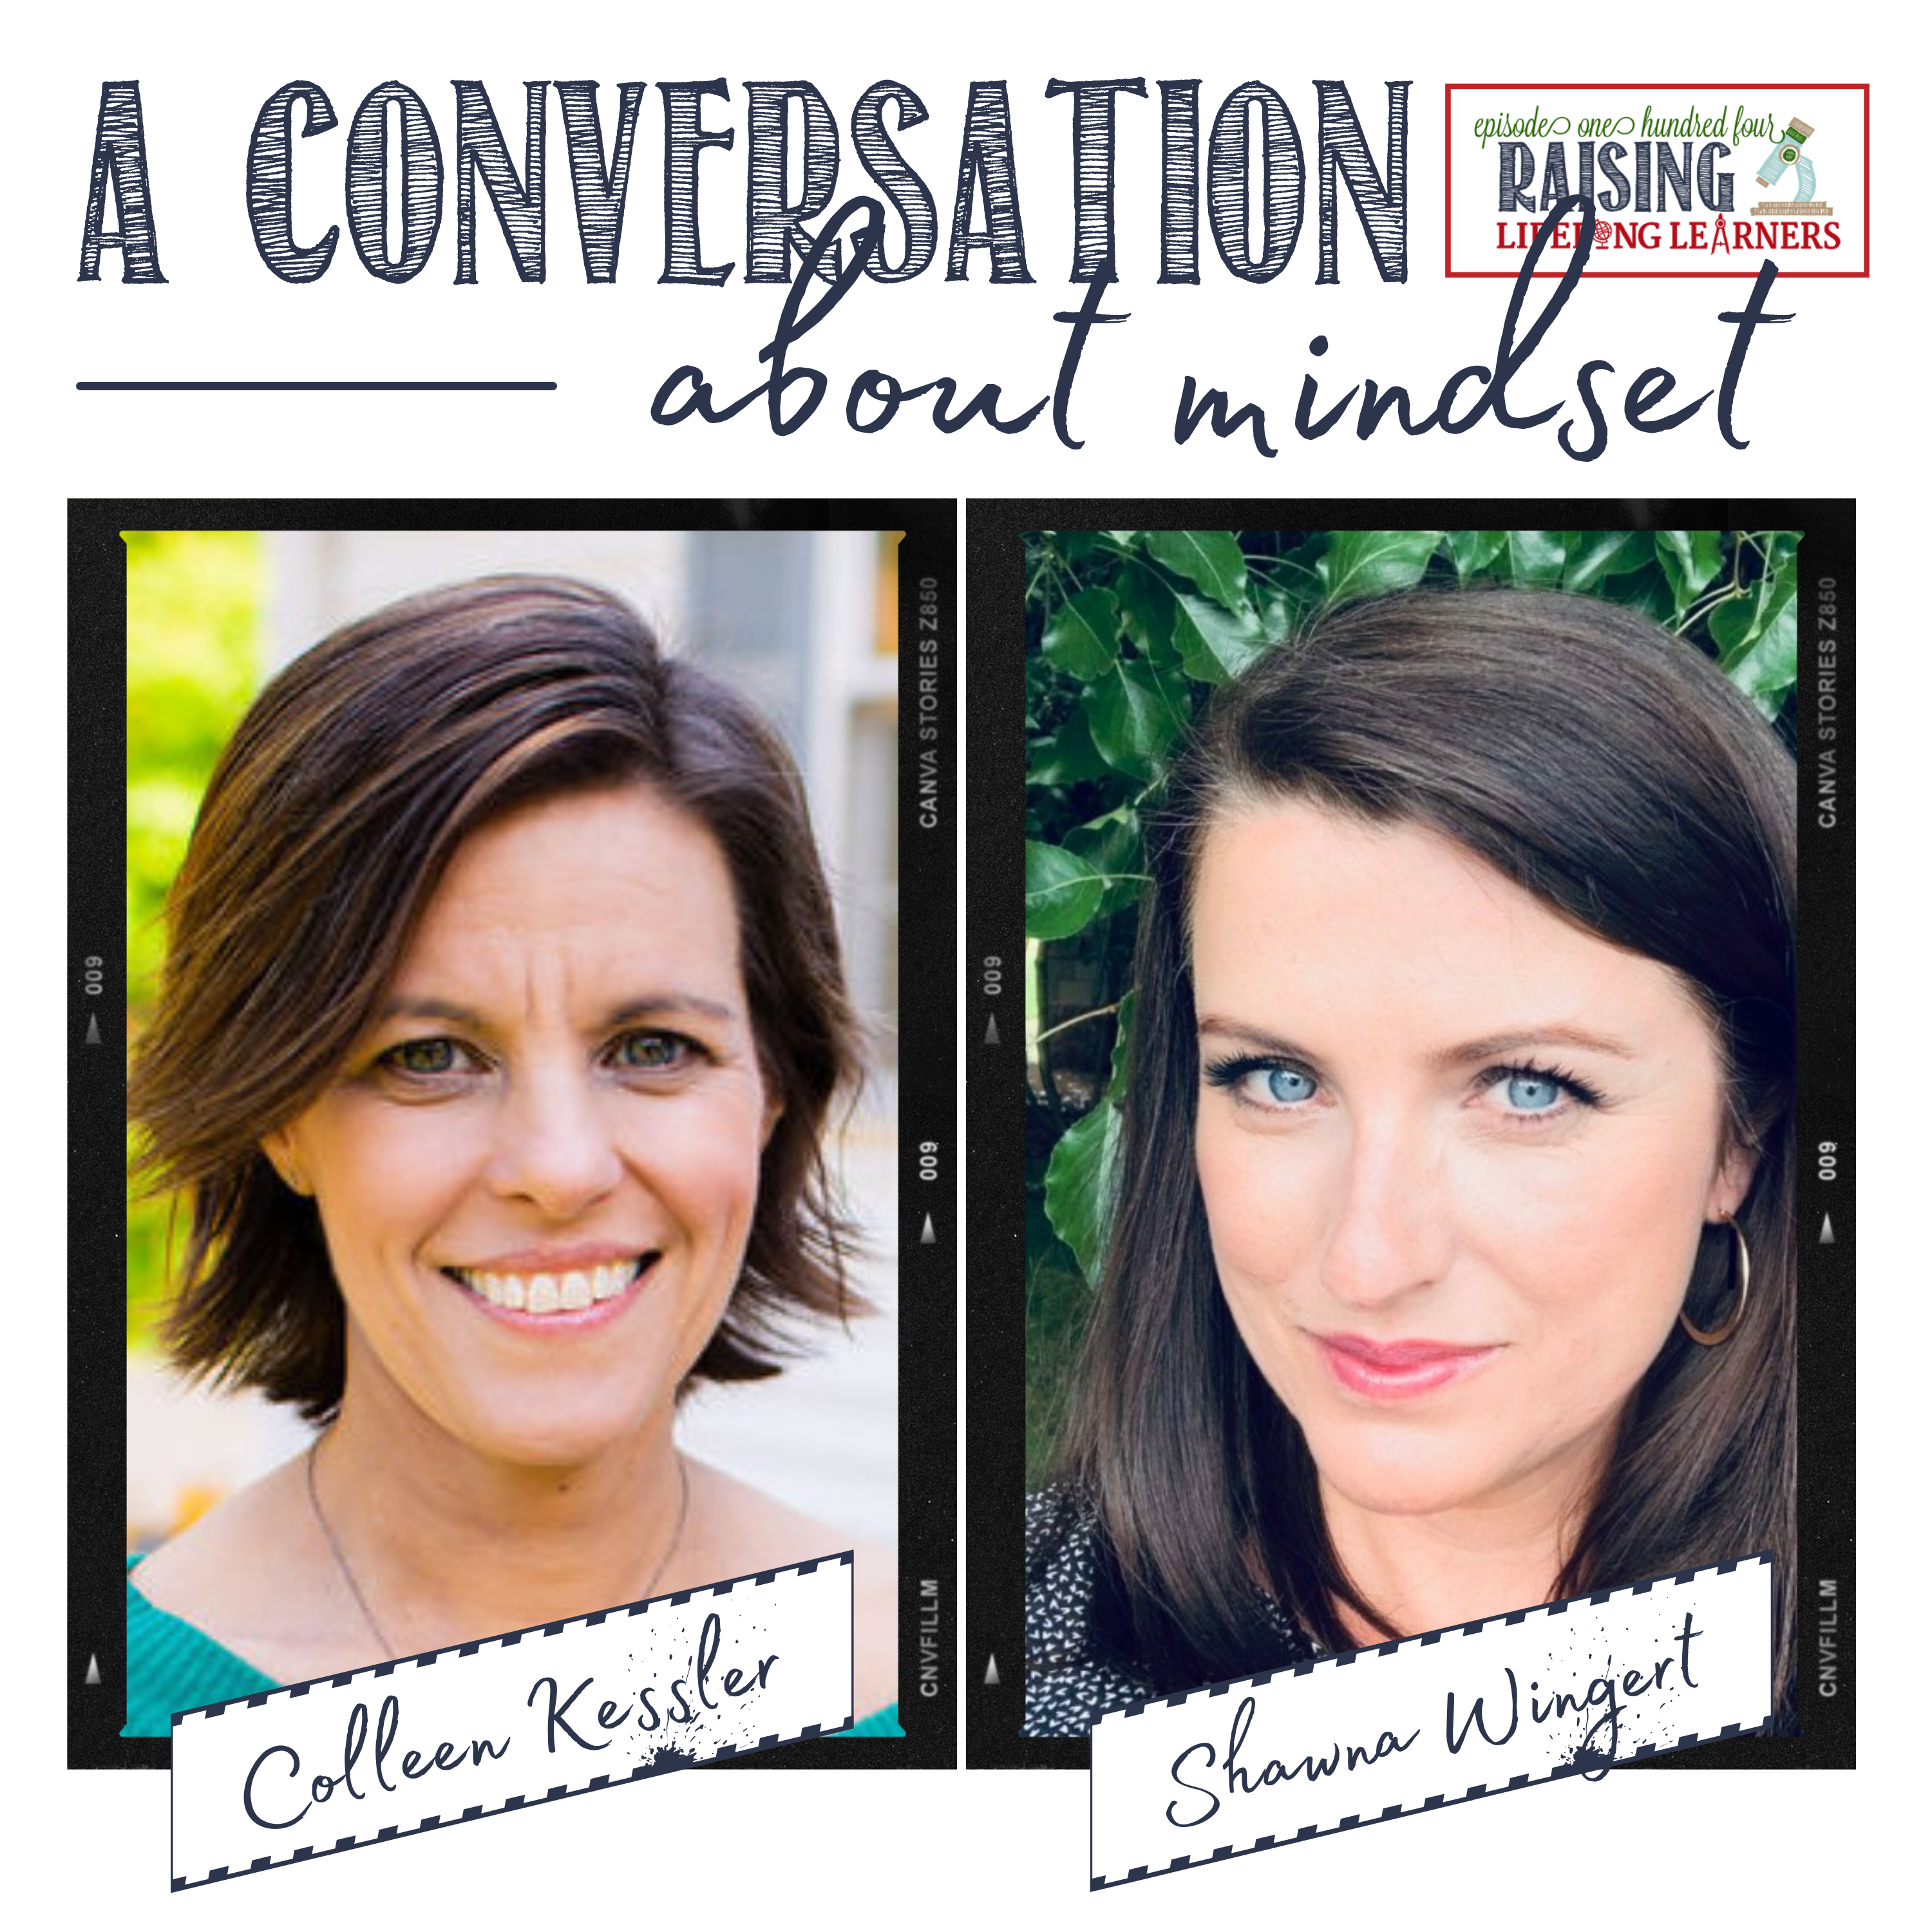 RLL #104: A Conversation on Mindset with Shawna Wingert